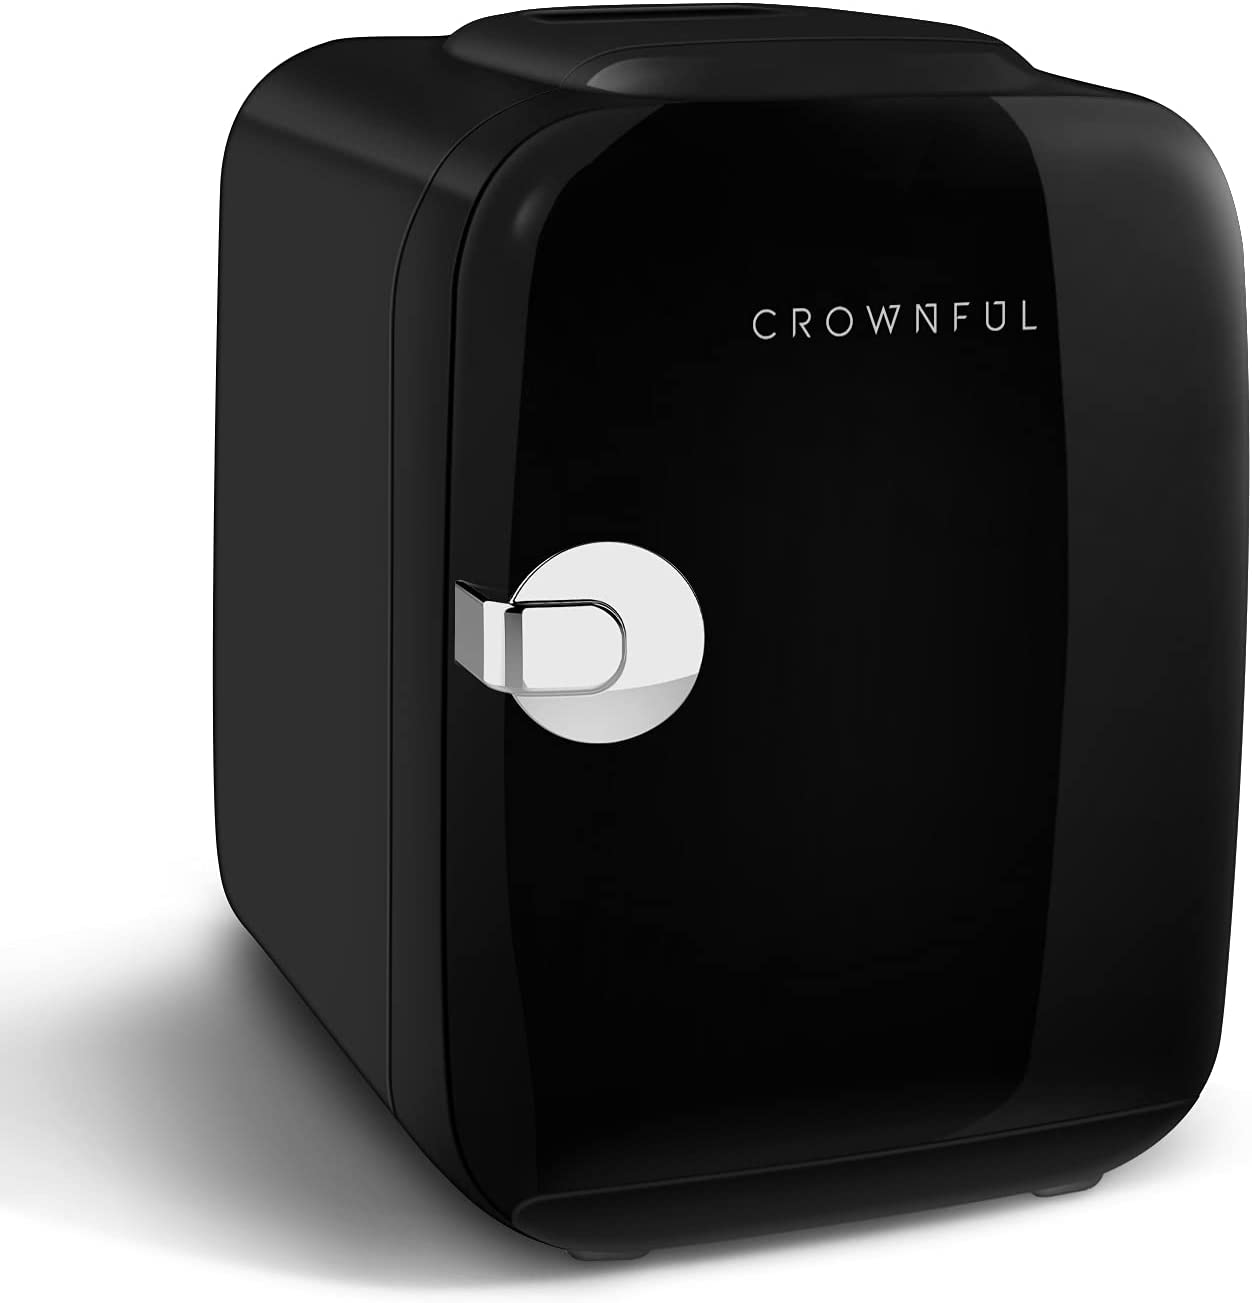 CROWNFUL Mini Fridge, 4 Liter/6 Can Portable Cooler and Warmer Personal Refrigerator for Skin Care, Cosmetics, Beverage, Food,Great for Bedroom, Office, Car, Dorm, ETL Listed (Black): Automotive